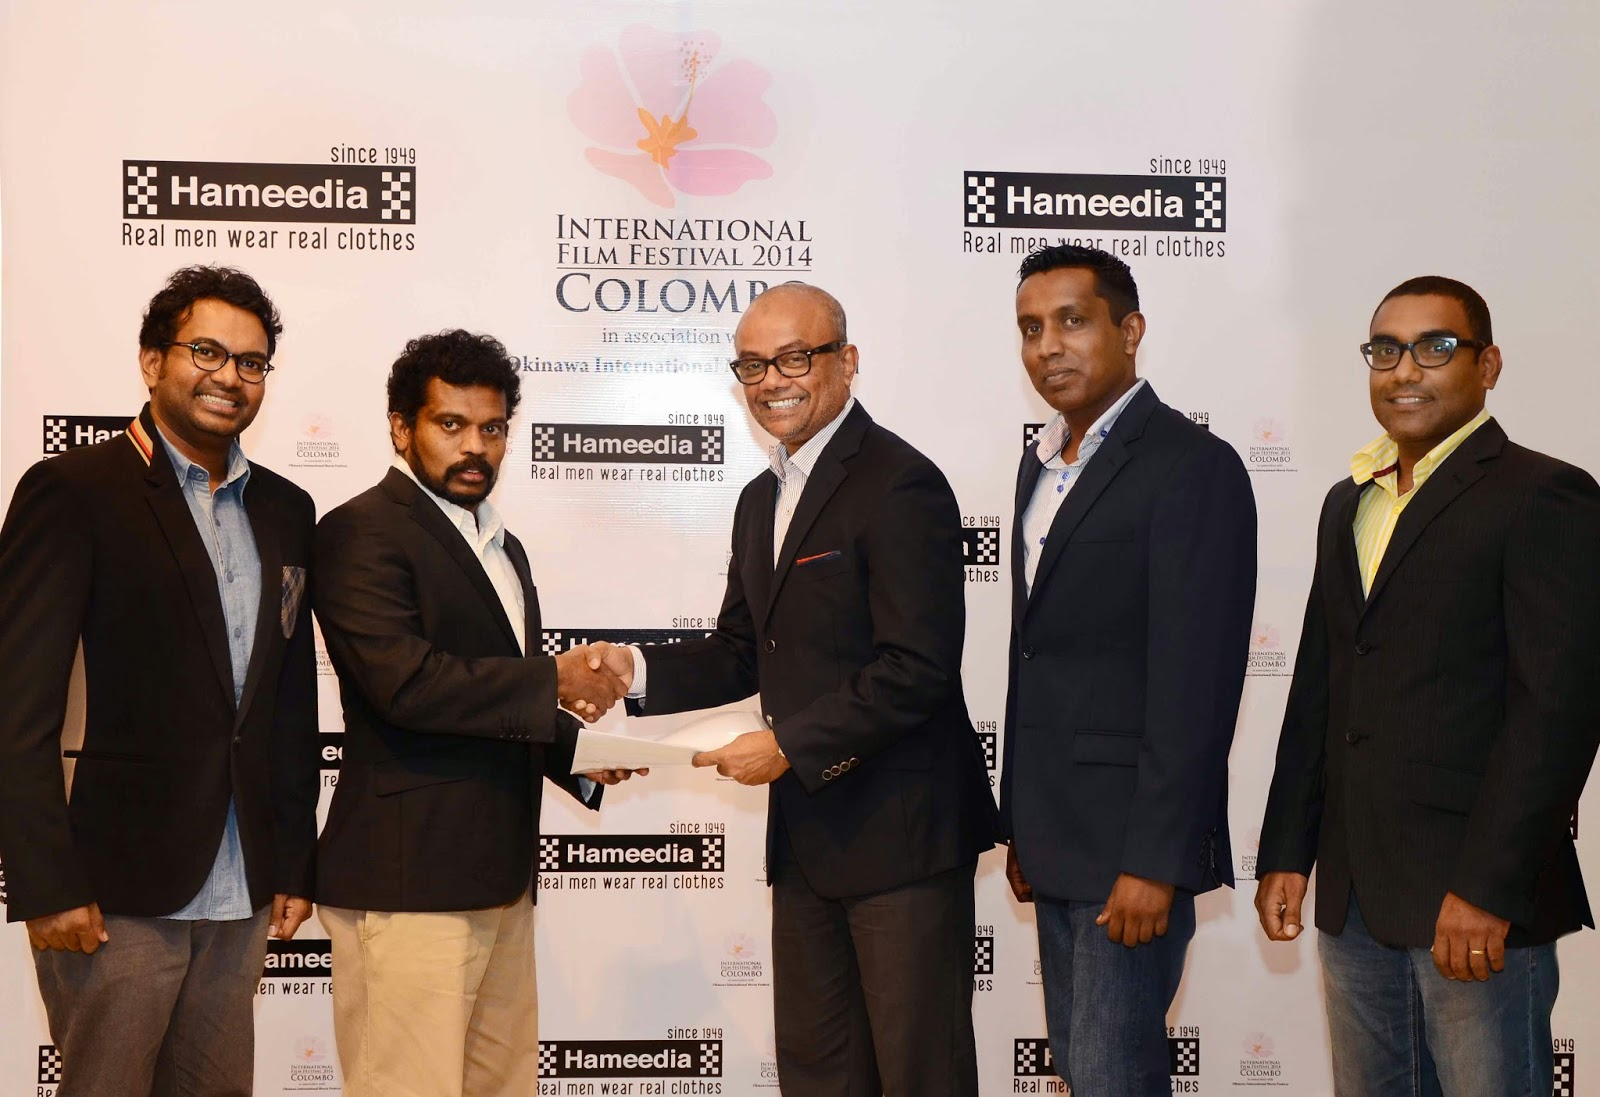 Standing from left to right - Vimukthi Jayasundara, Film Director; Asoka Handhagama, Director, IFFC; Fouzul Hameedia, Managing Director, Hameedia; Yasotharan Paramanantham, Head of Retail Sales and Marketing, Hameedia; and Ramasamy Balakumar; Manager Advertising and Promotions, Hameedia